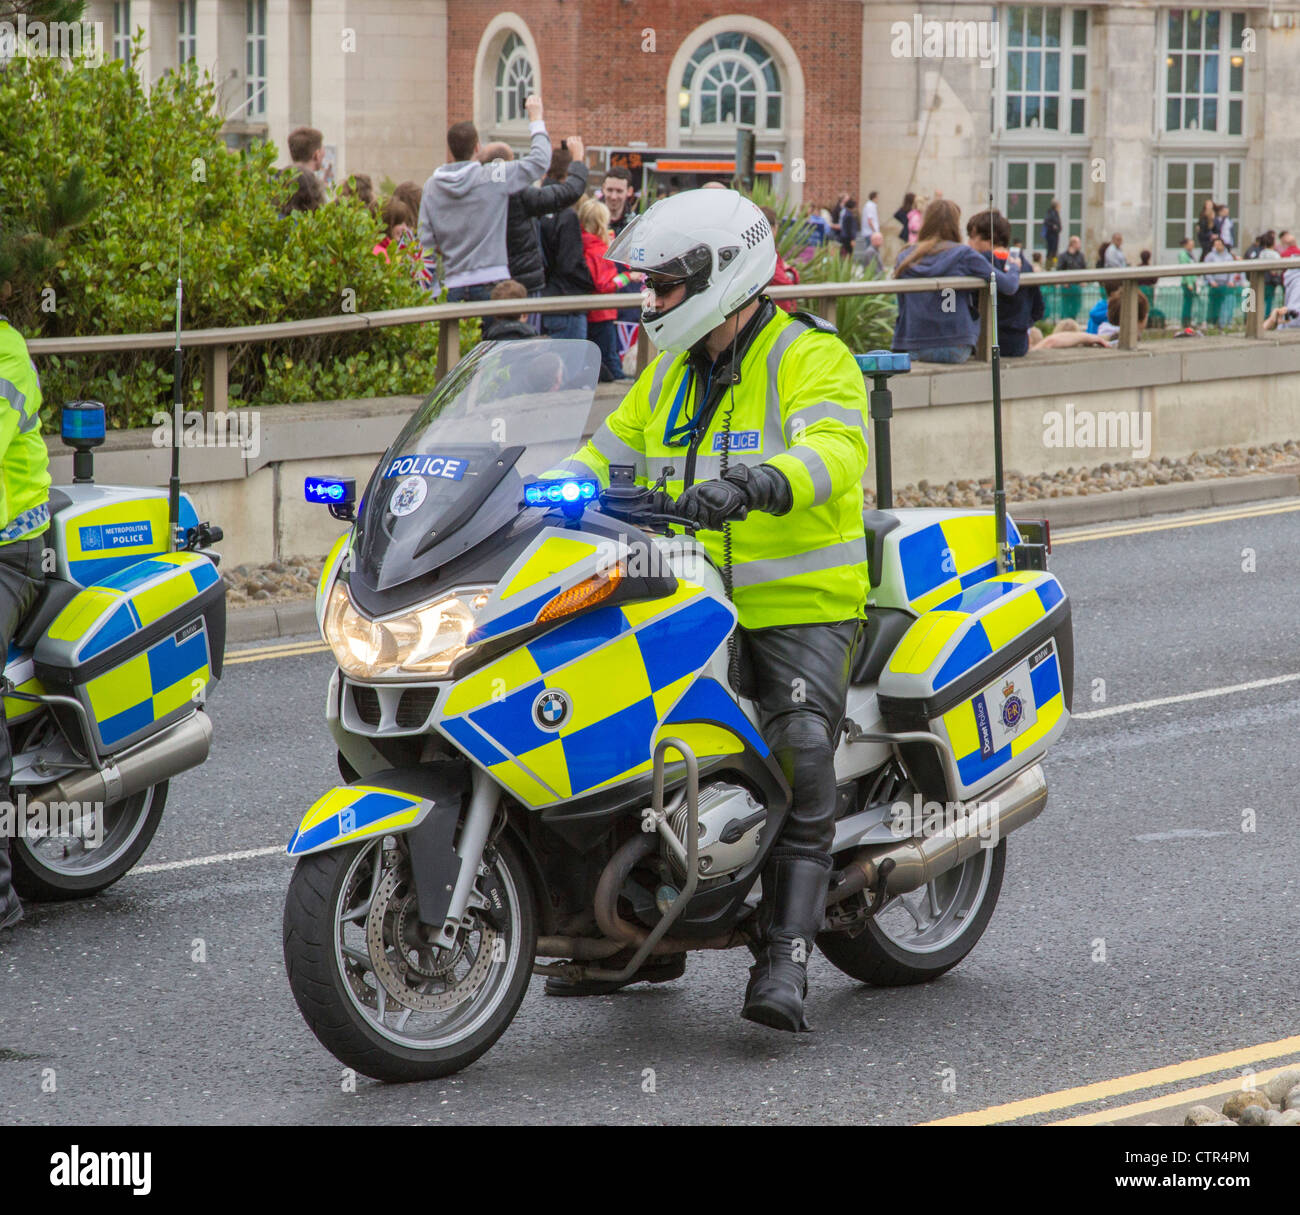 British Traffic Police Motorcyclist astride his motorcycle stationary in roadway, Dorset, England, UK - Stock Image